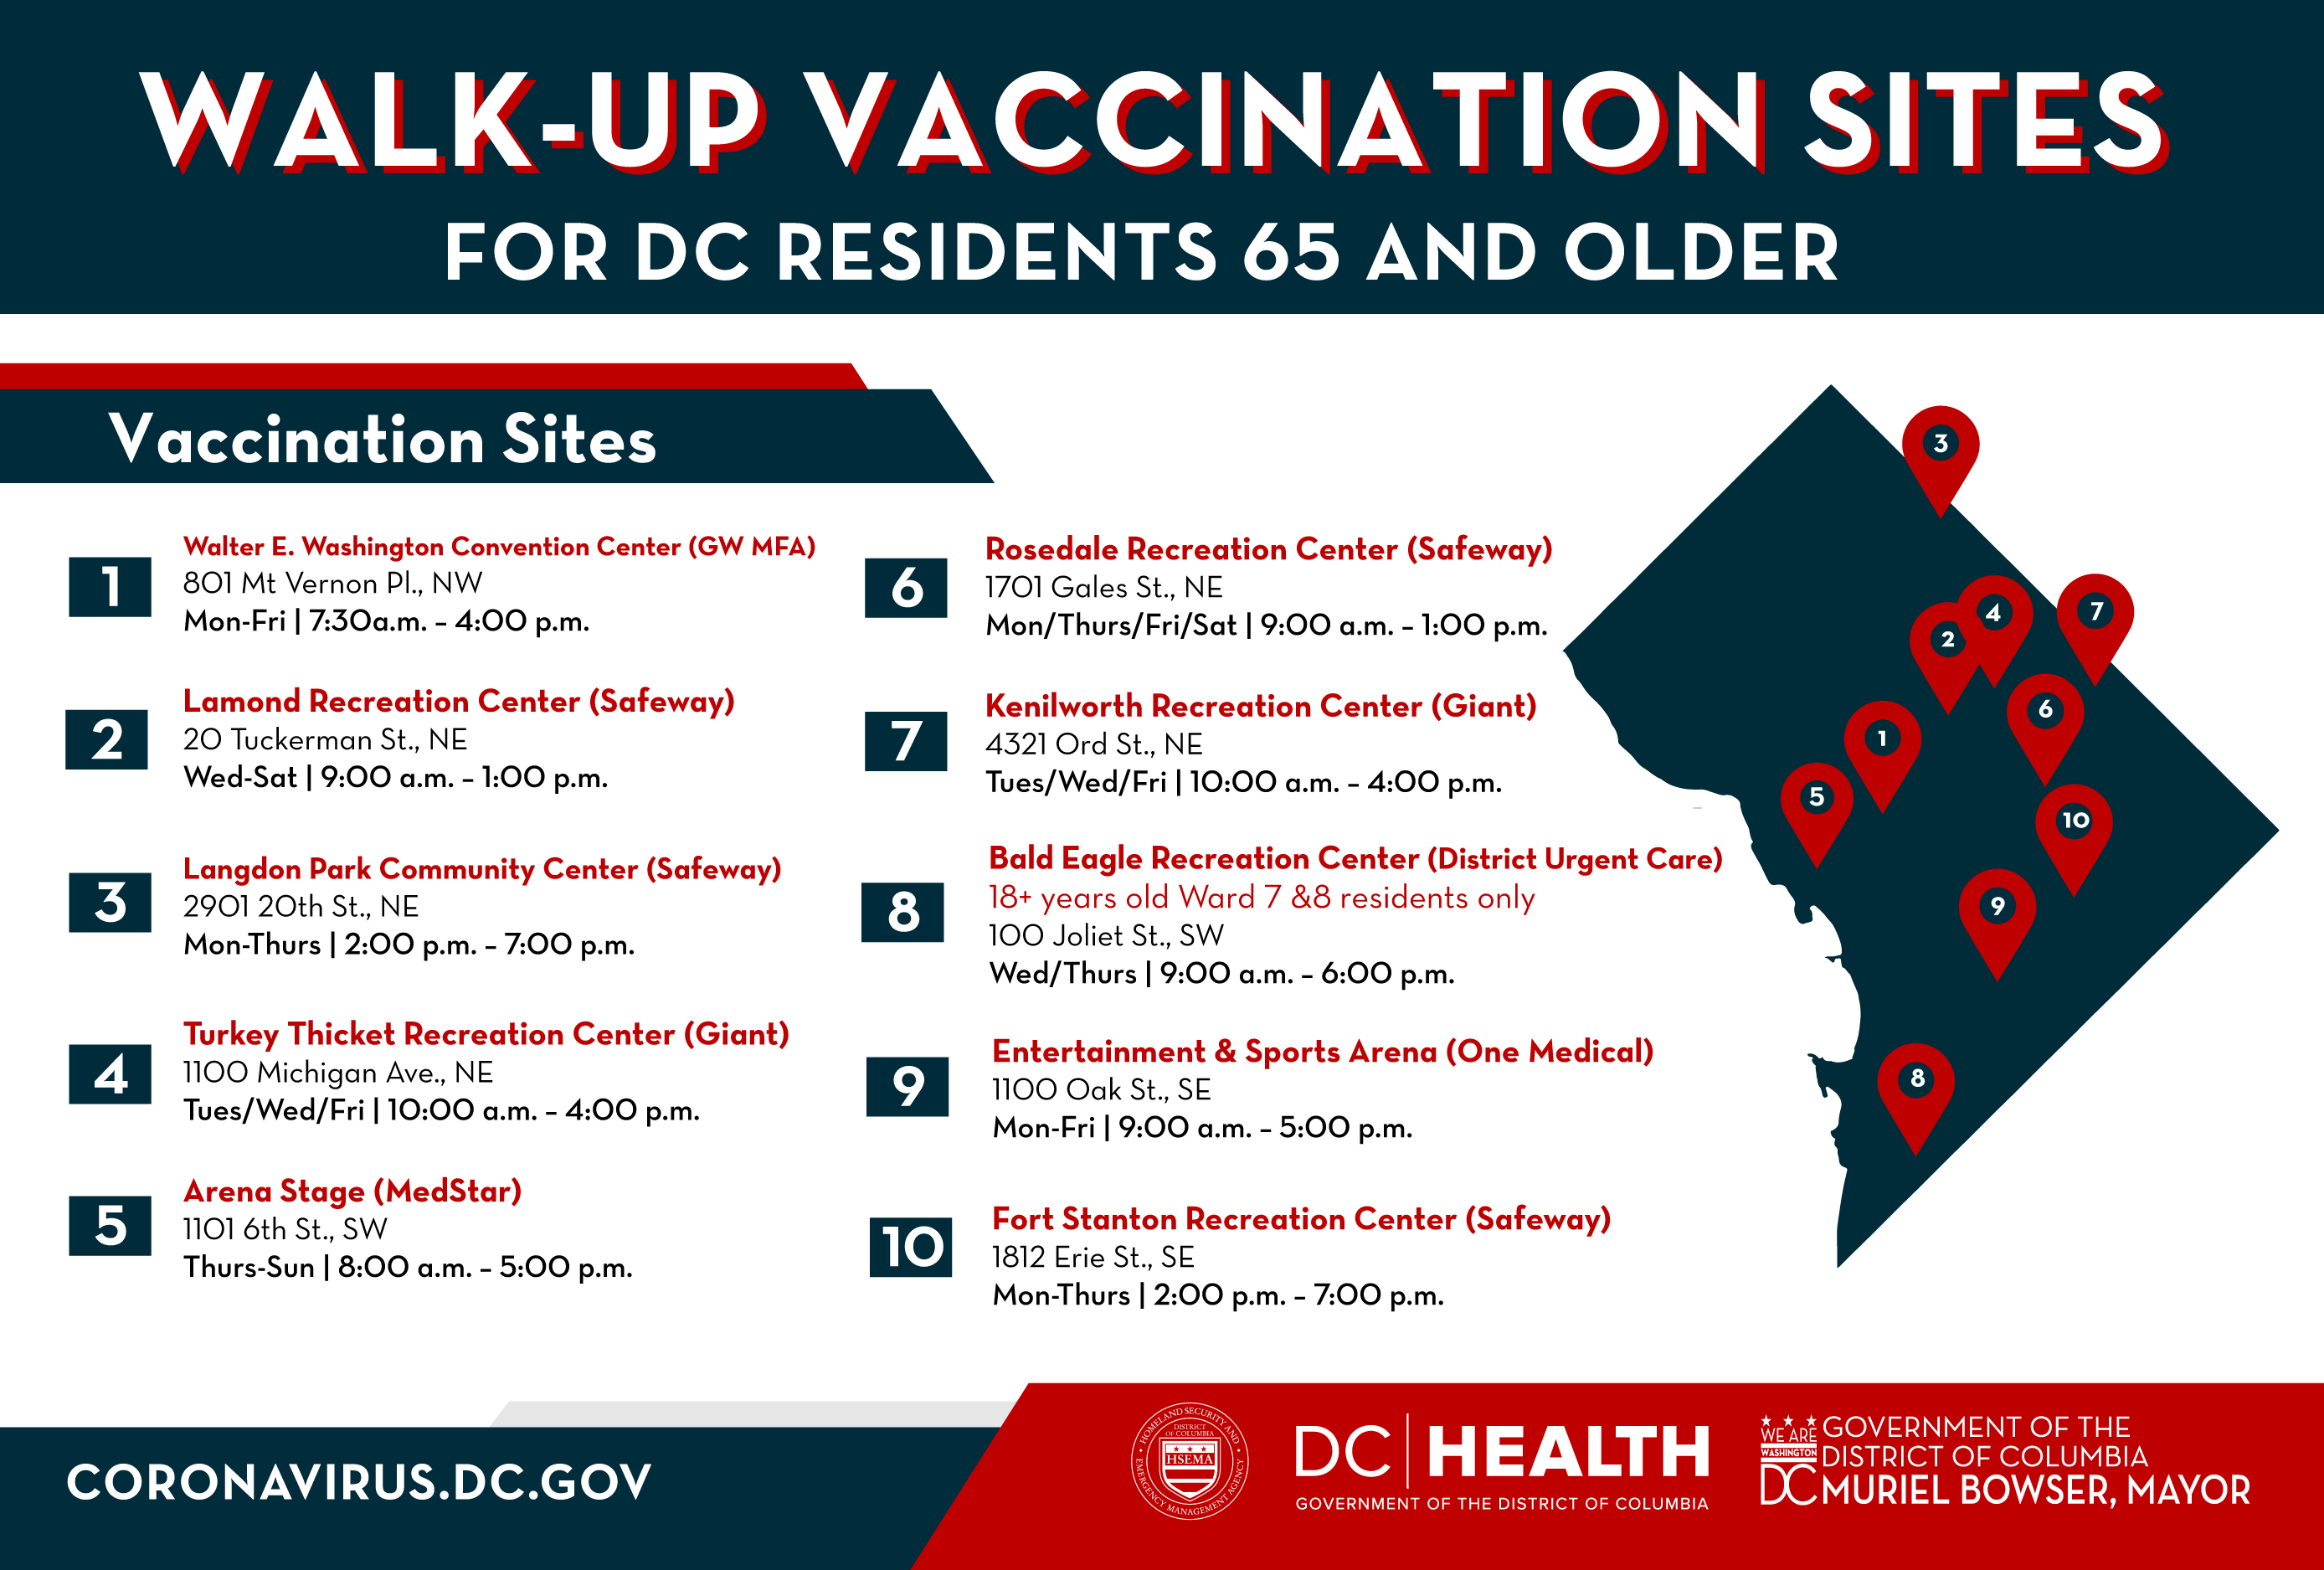 Walk Up Vaccination Sites for DC Residents 65 and Older